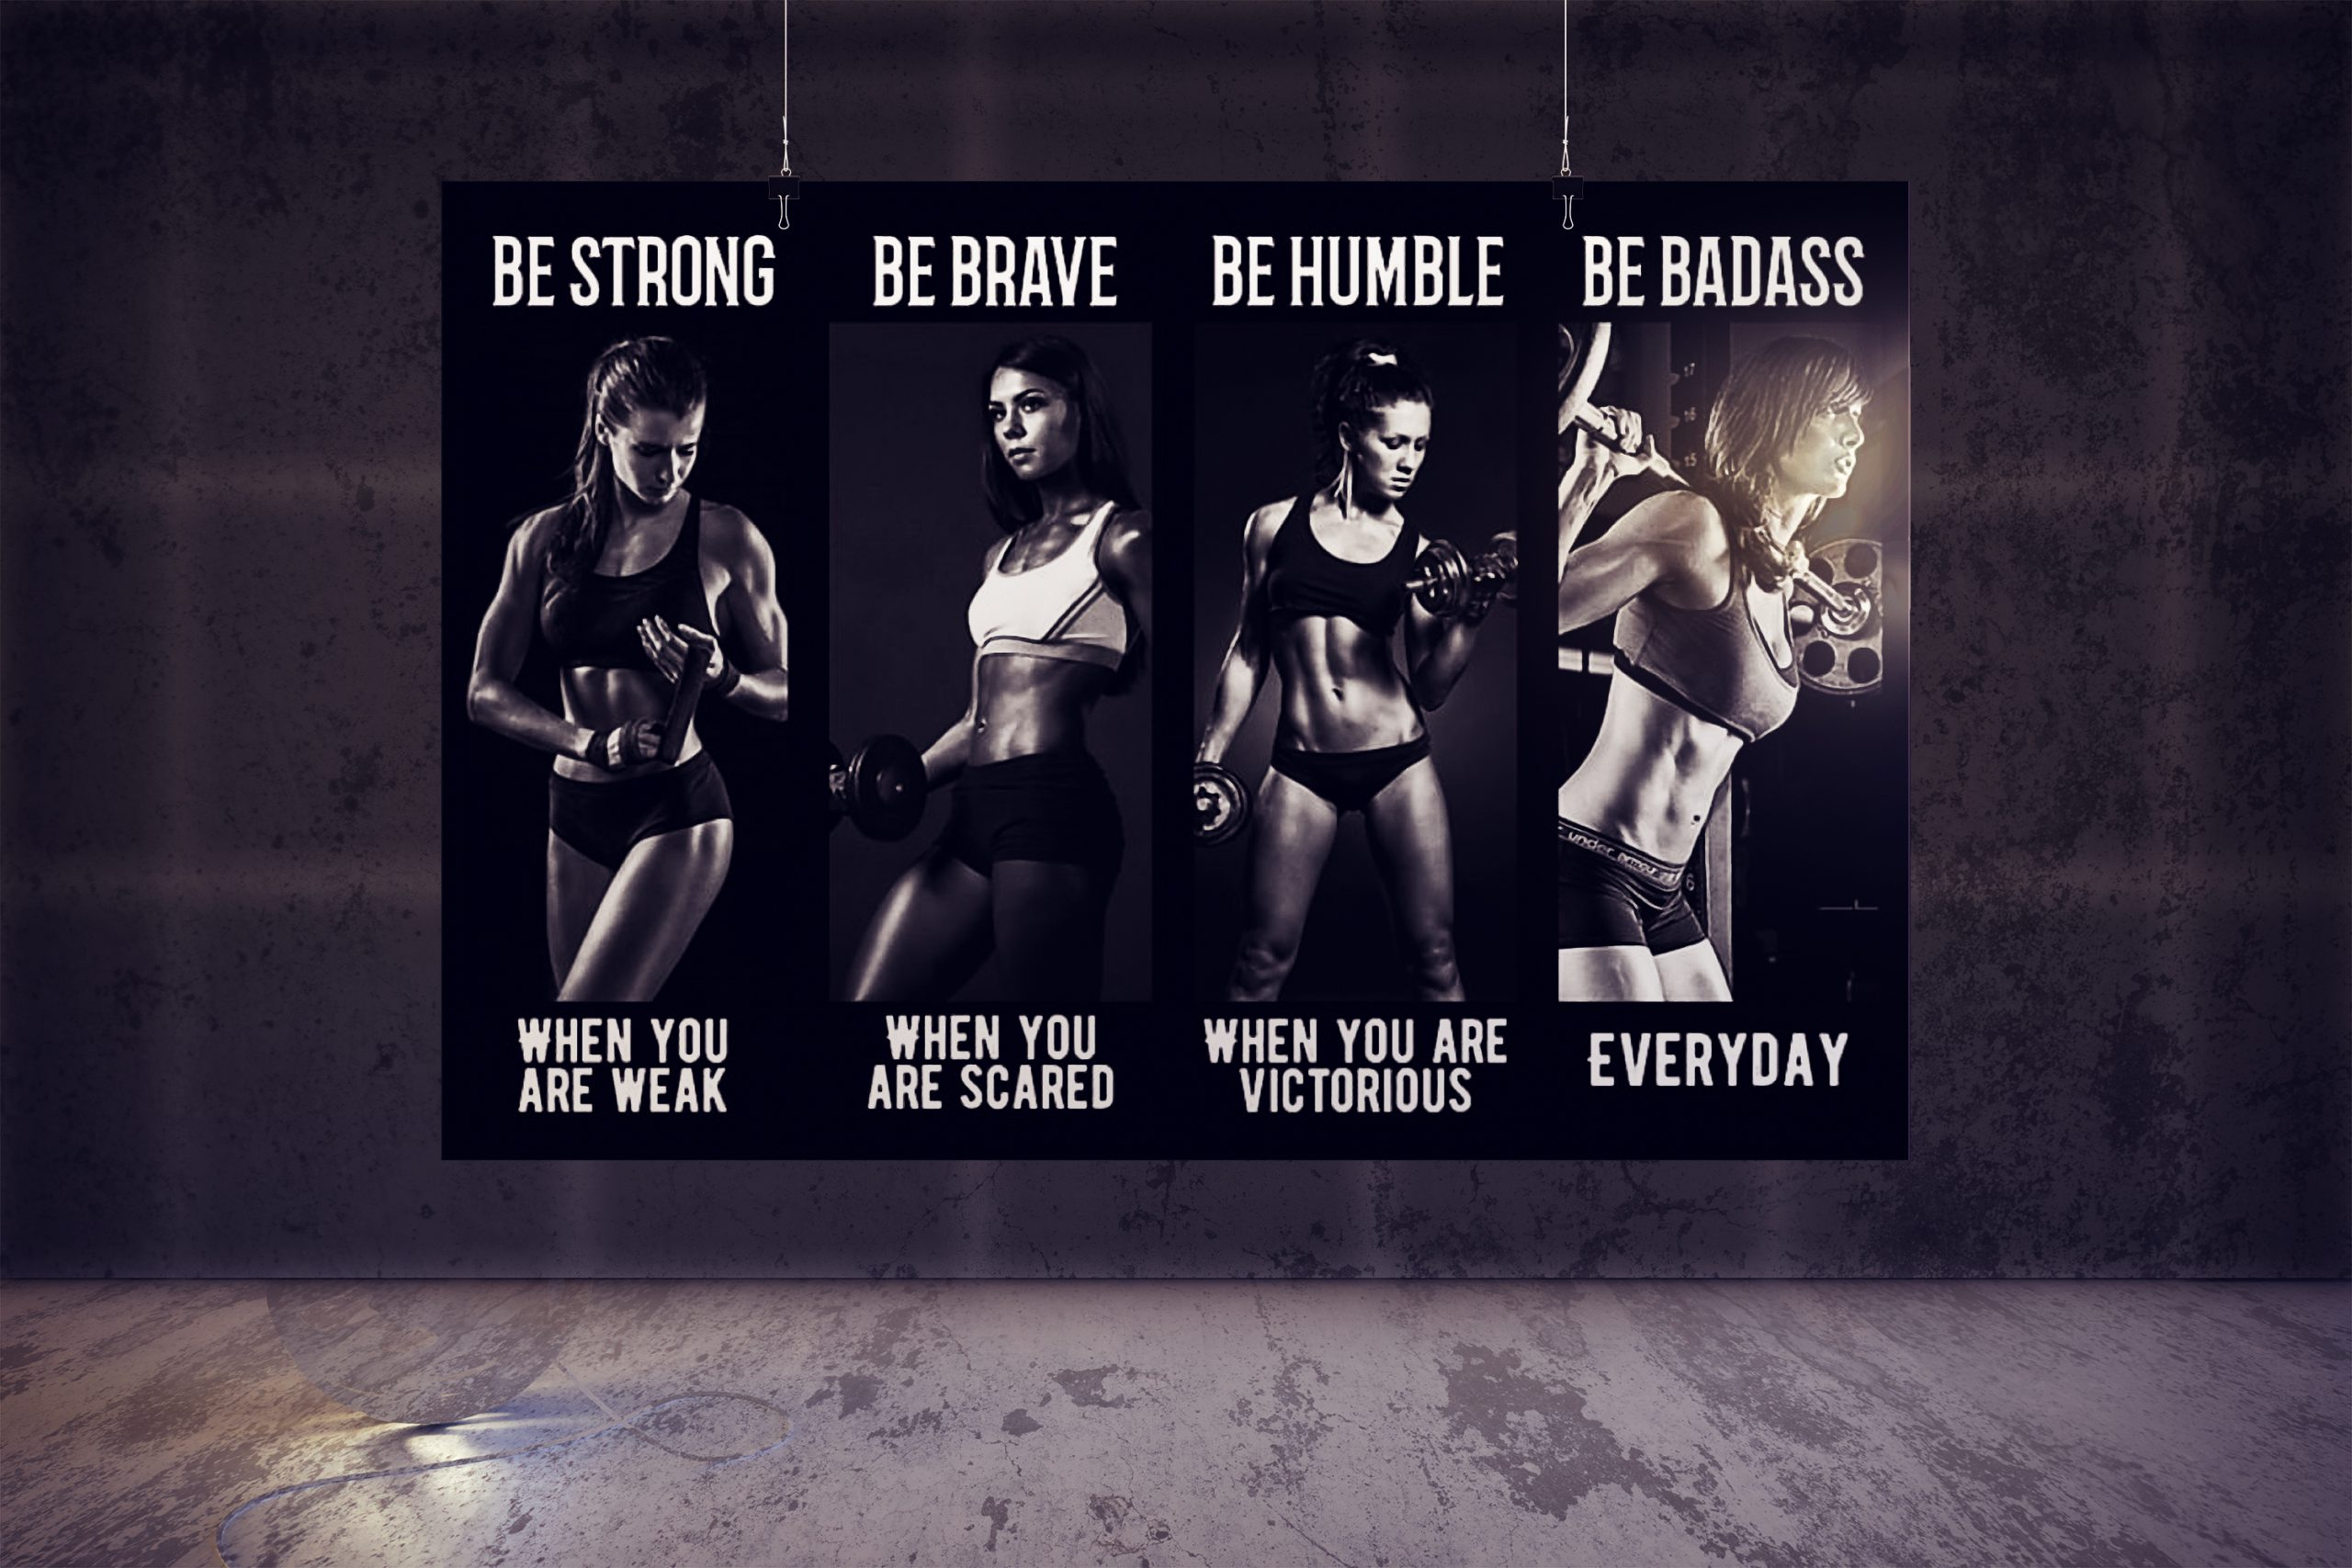 Bodybuilding Girl be strong be brave be humble be badass poster 3